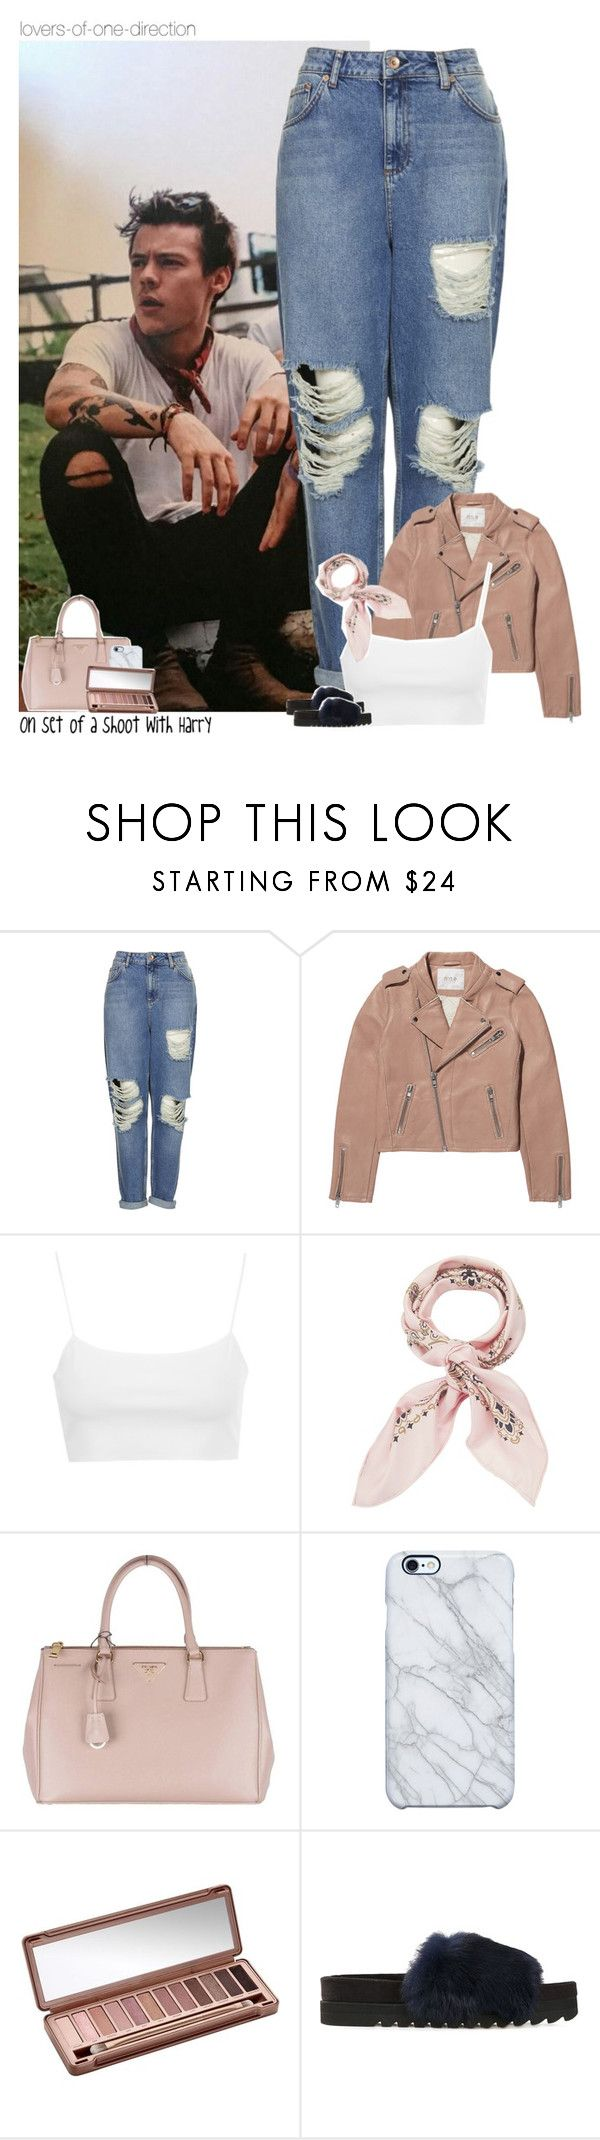 """On set of a shoot with Harry"" by lovers-of-one-direction ❤ liked on Polyvore featuring Topshop, Maje, Manipuri, Prada, Uncommon, Urban Decay and Undercover"